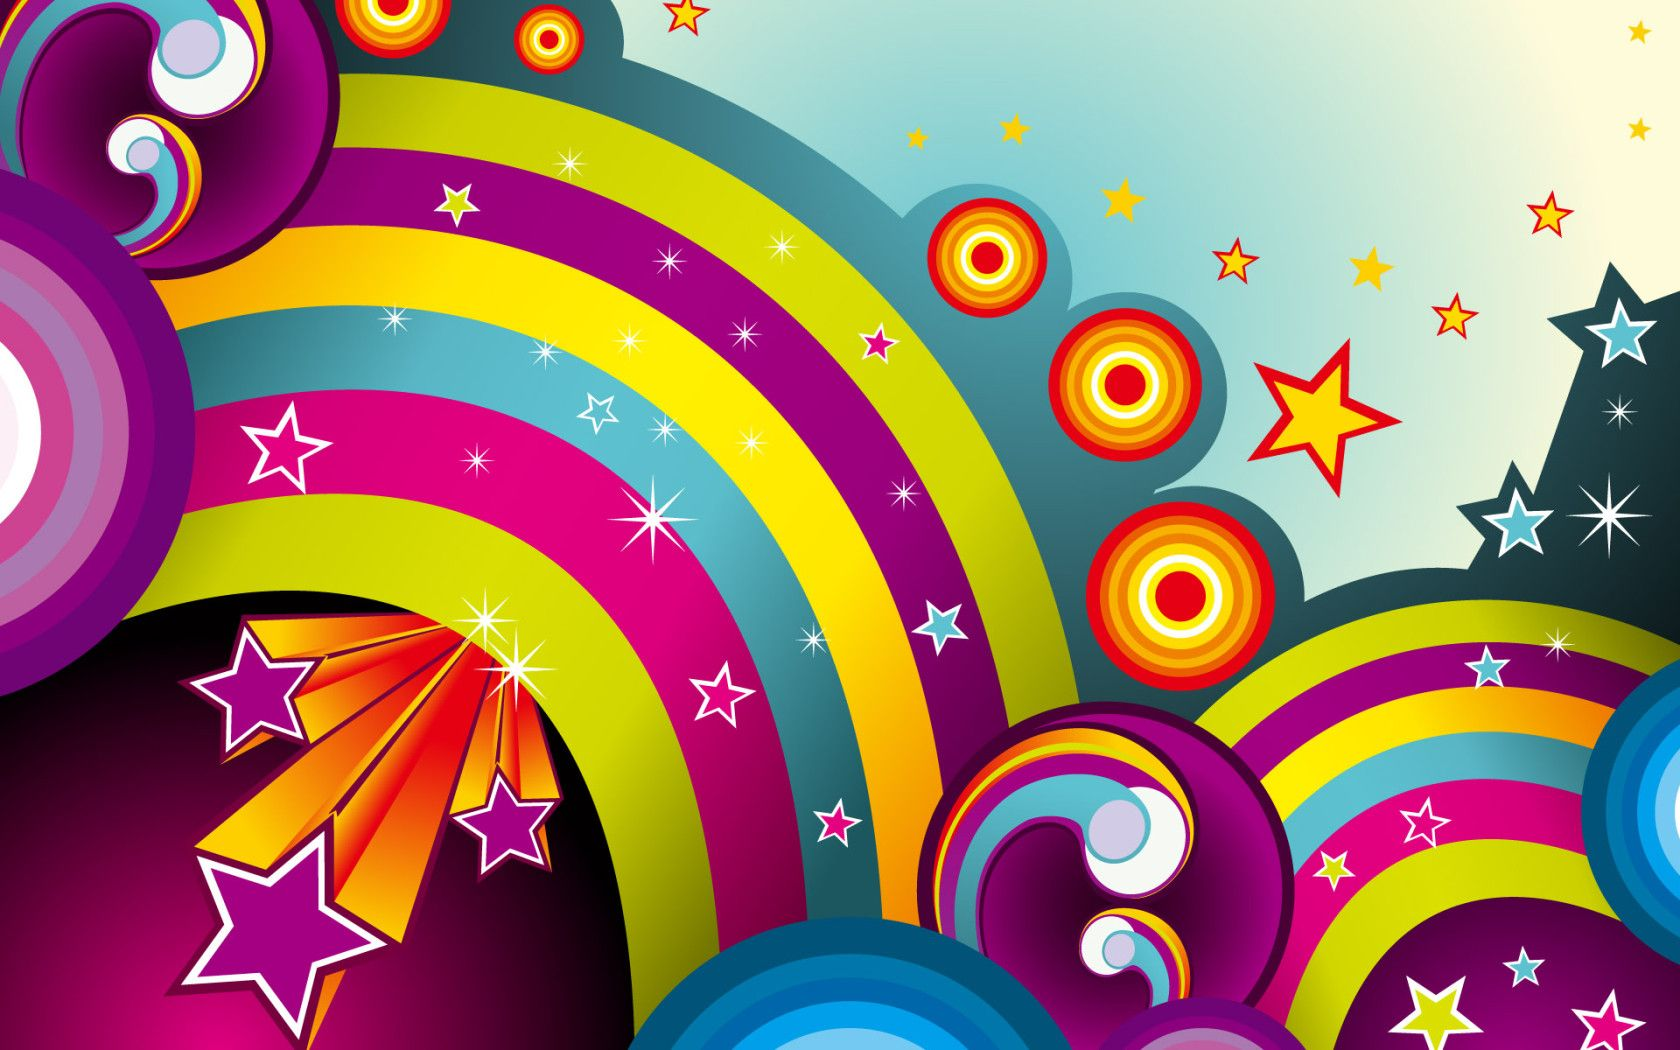 Hd wallpaper vector - Custom Graphics That Are Based On Vectors And Versatility